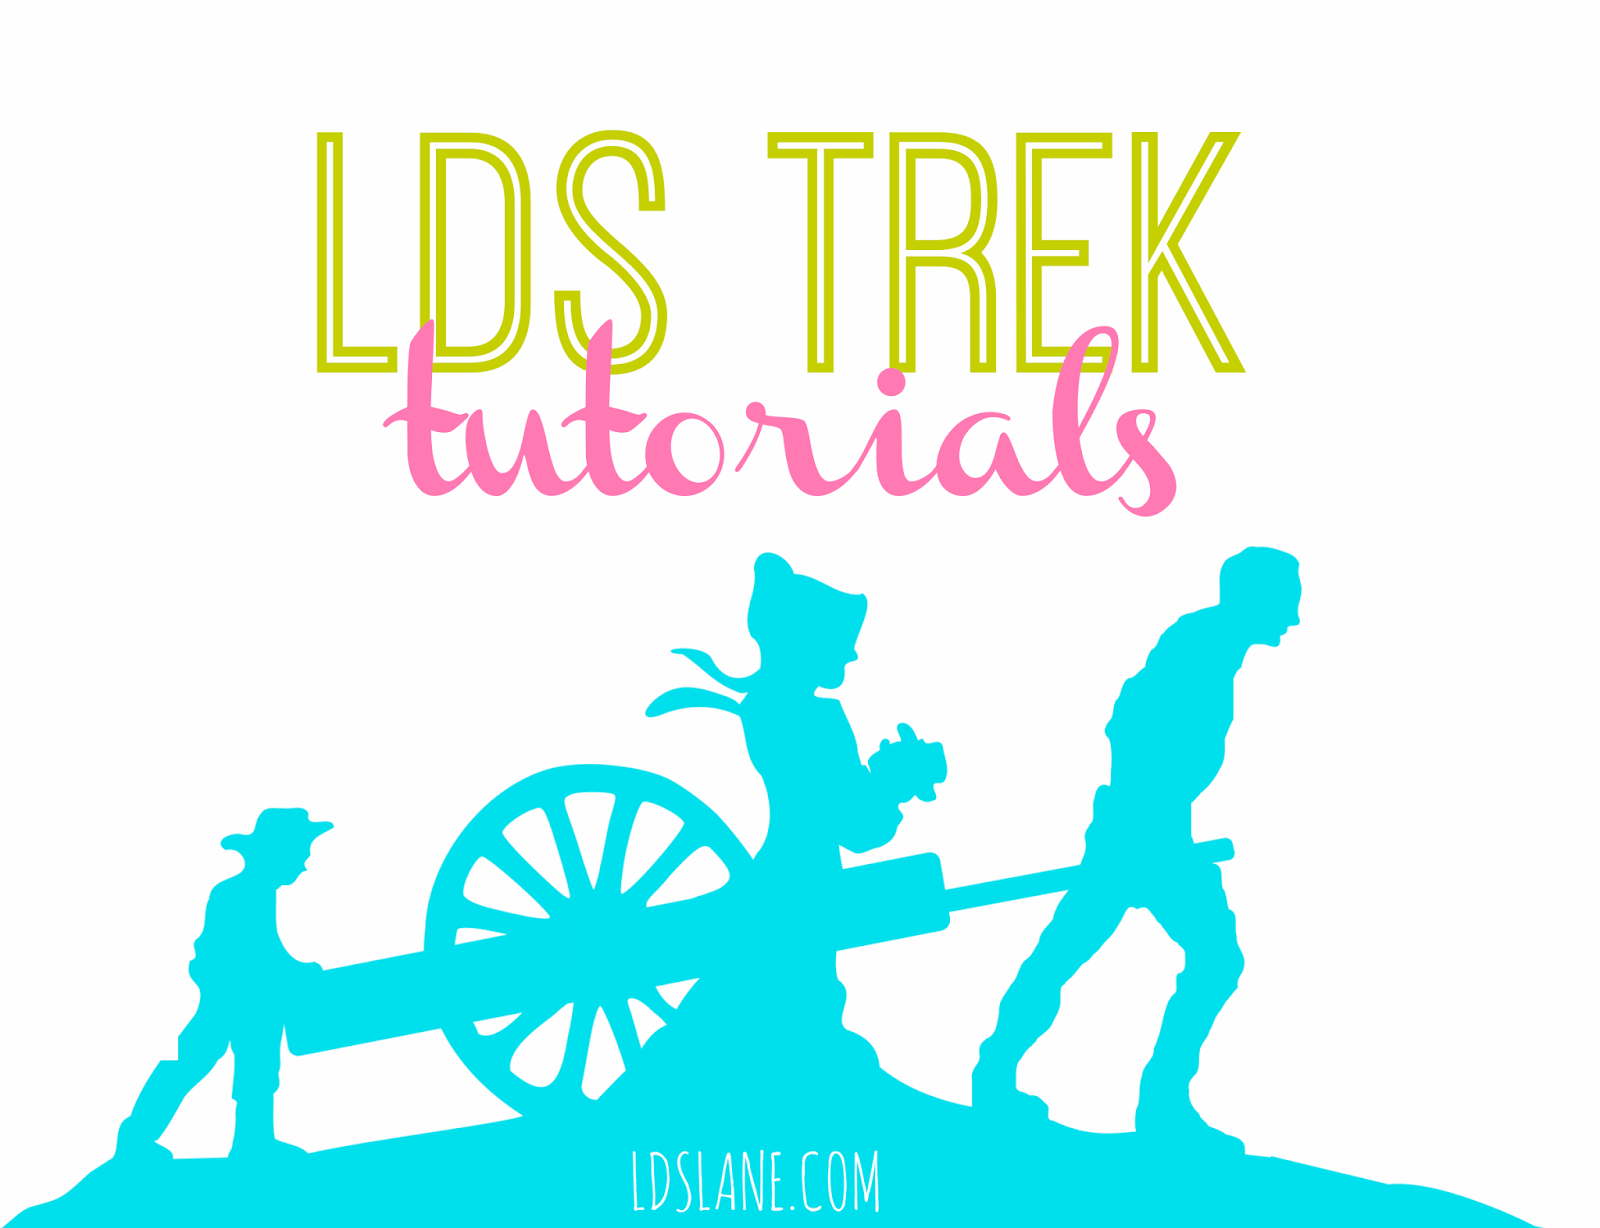 LDS Trek Tutorials at LDSlane.com